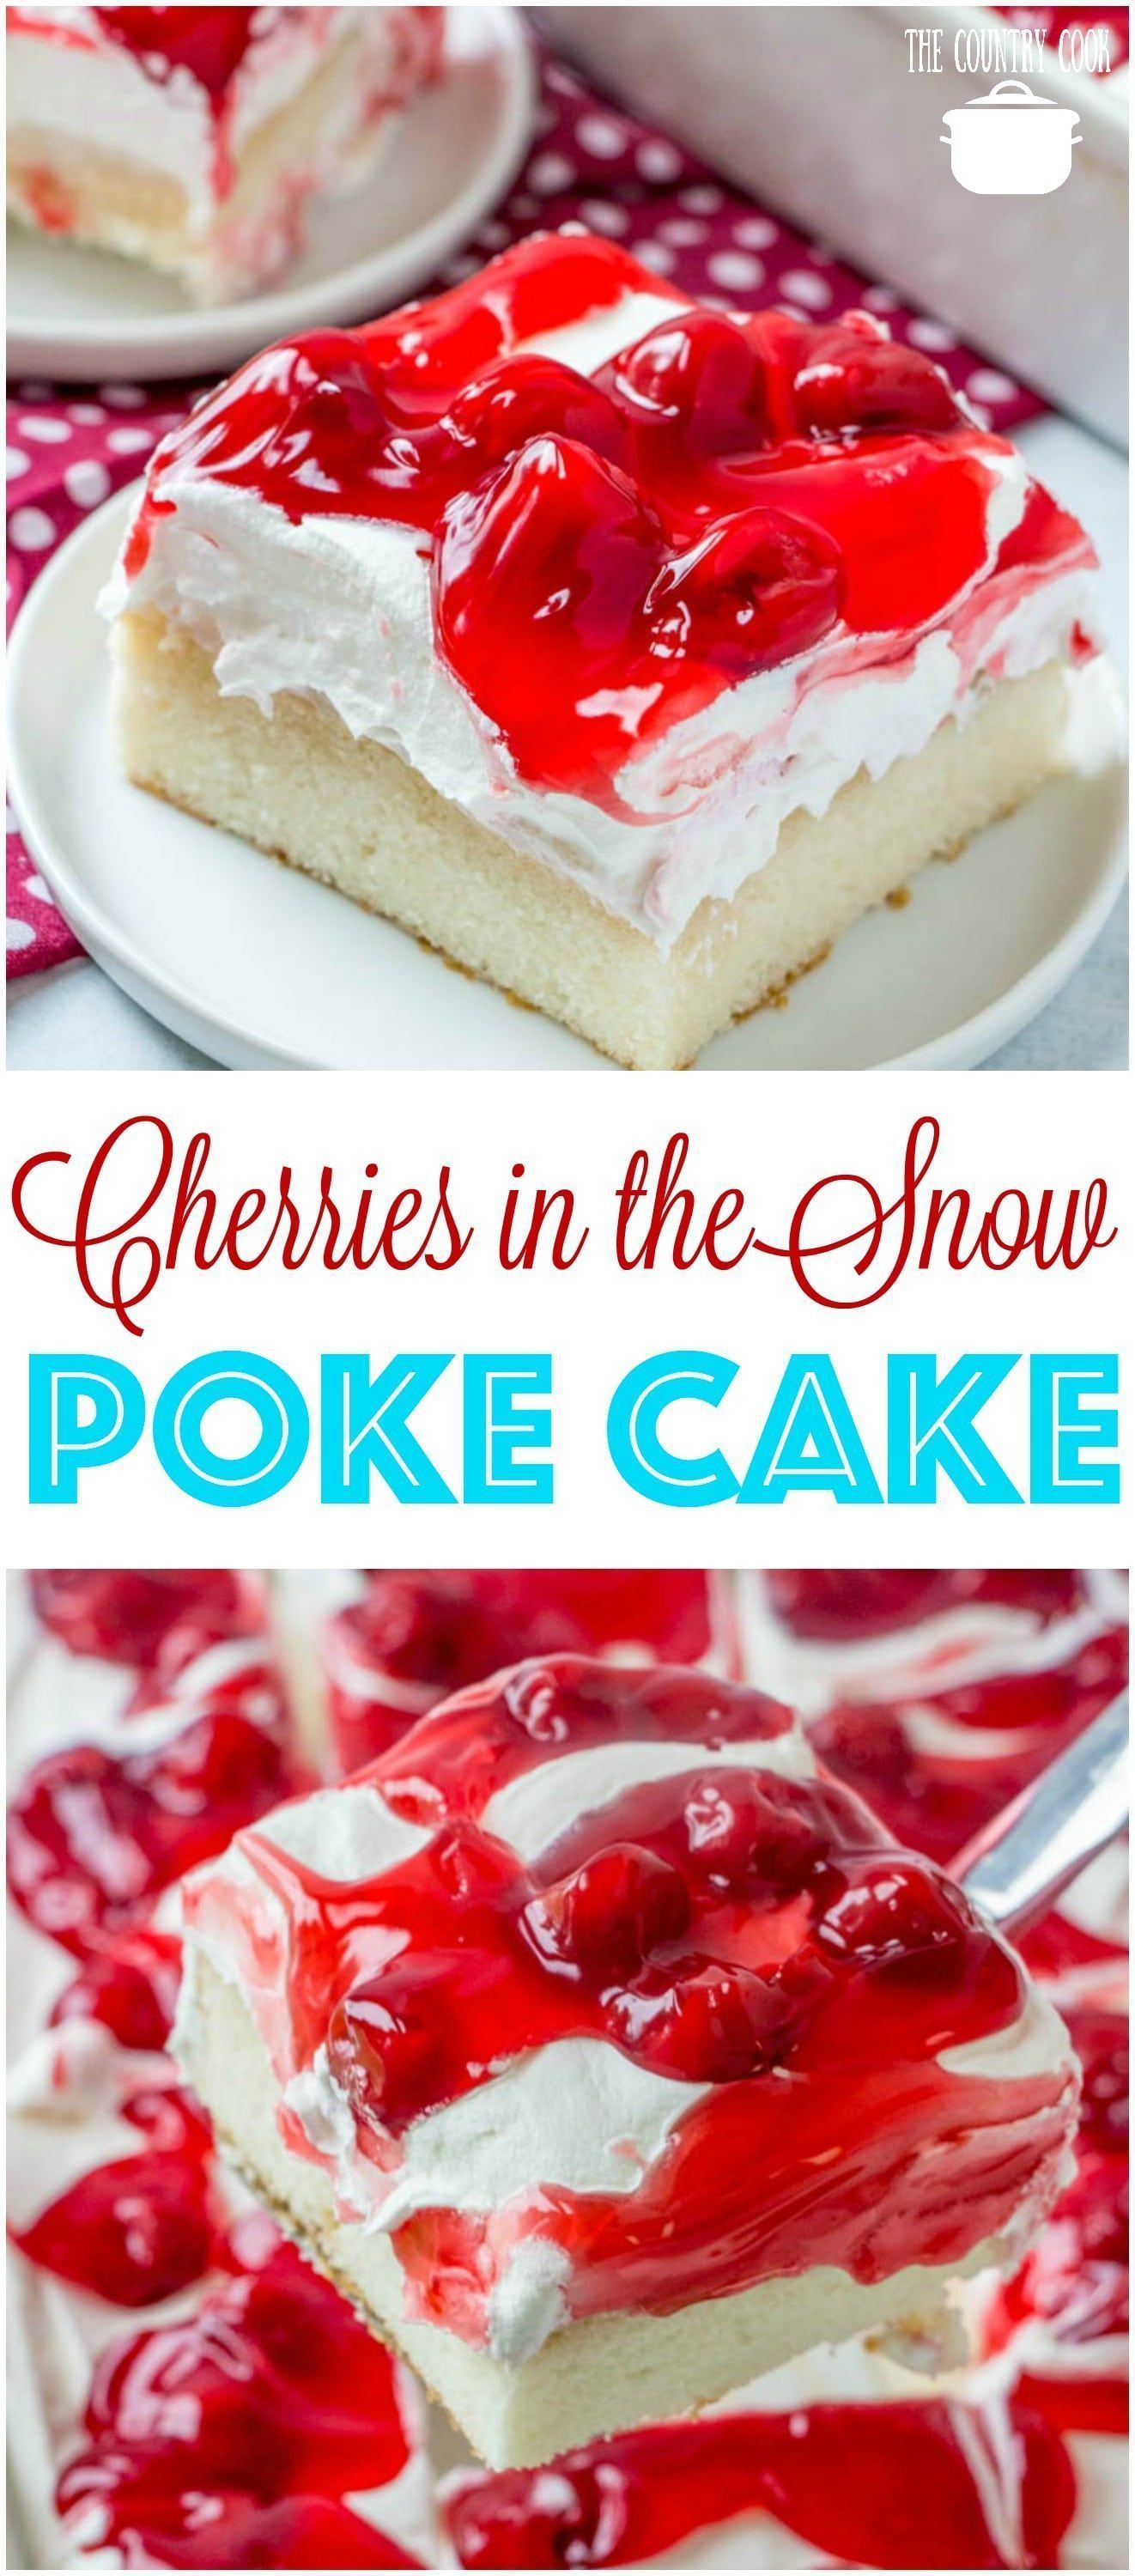 in the snow poke cake Cherries in the Snow Pudding Poke Cake recipe from The Country CookCherries in the Snow Pudding Poke Cake recipe from The Country Cook in the snow p...